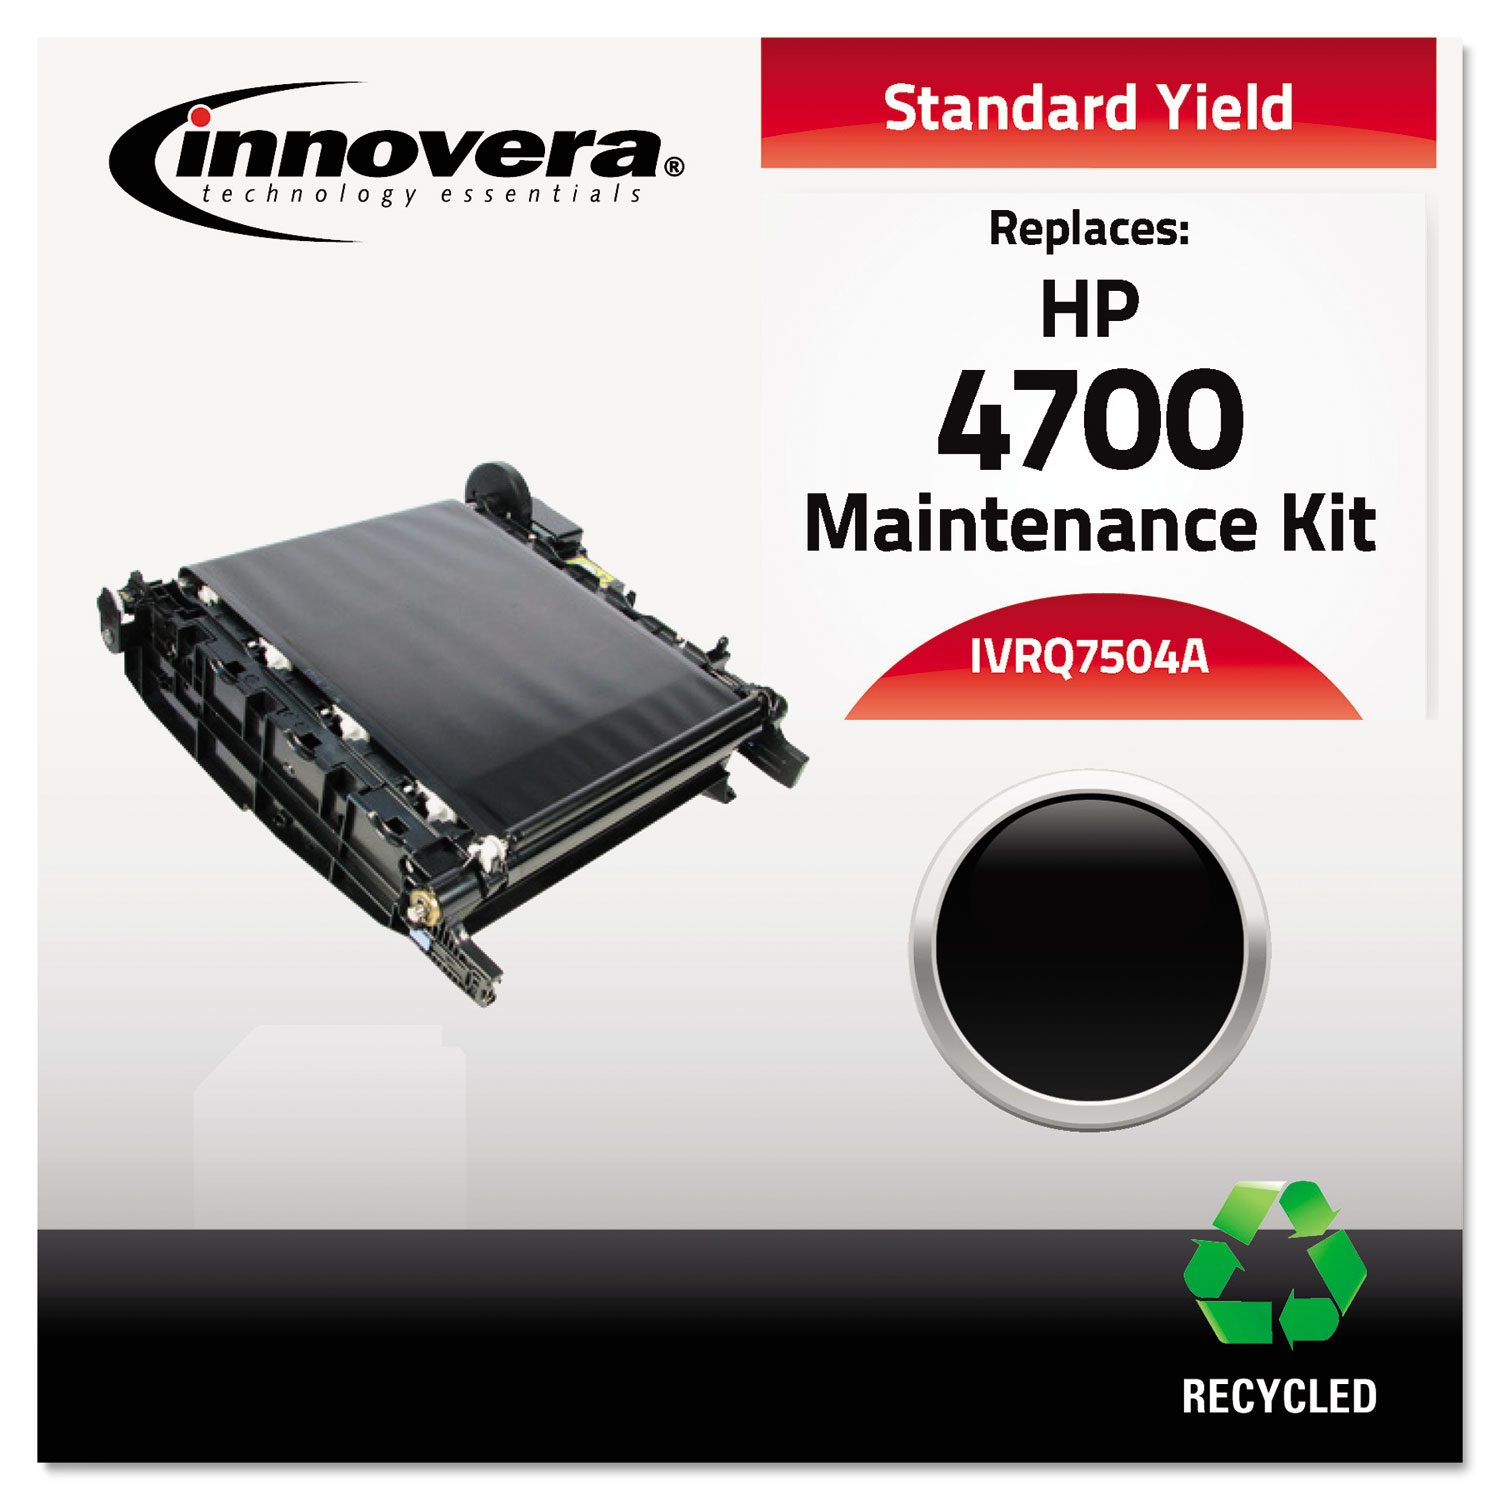 Remanufactured Q7504A Transfer Kit, 100,000 Page-Yield IVRQ7504A